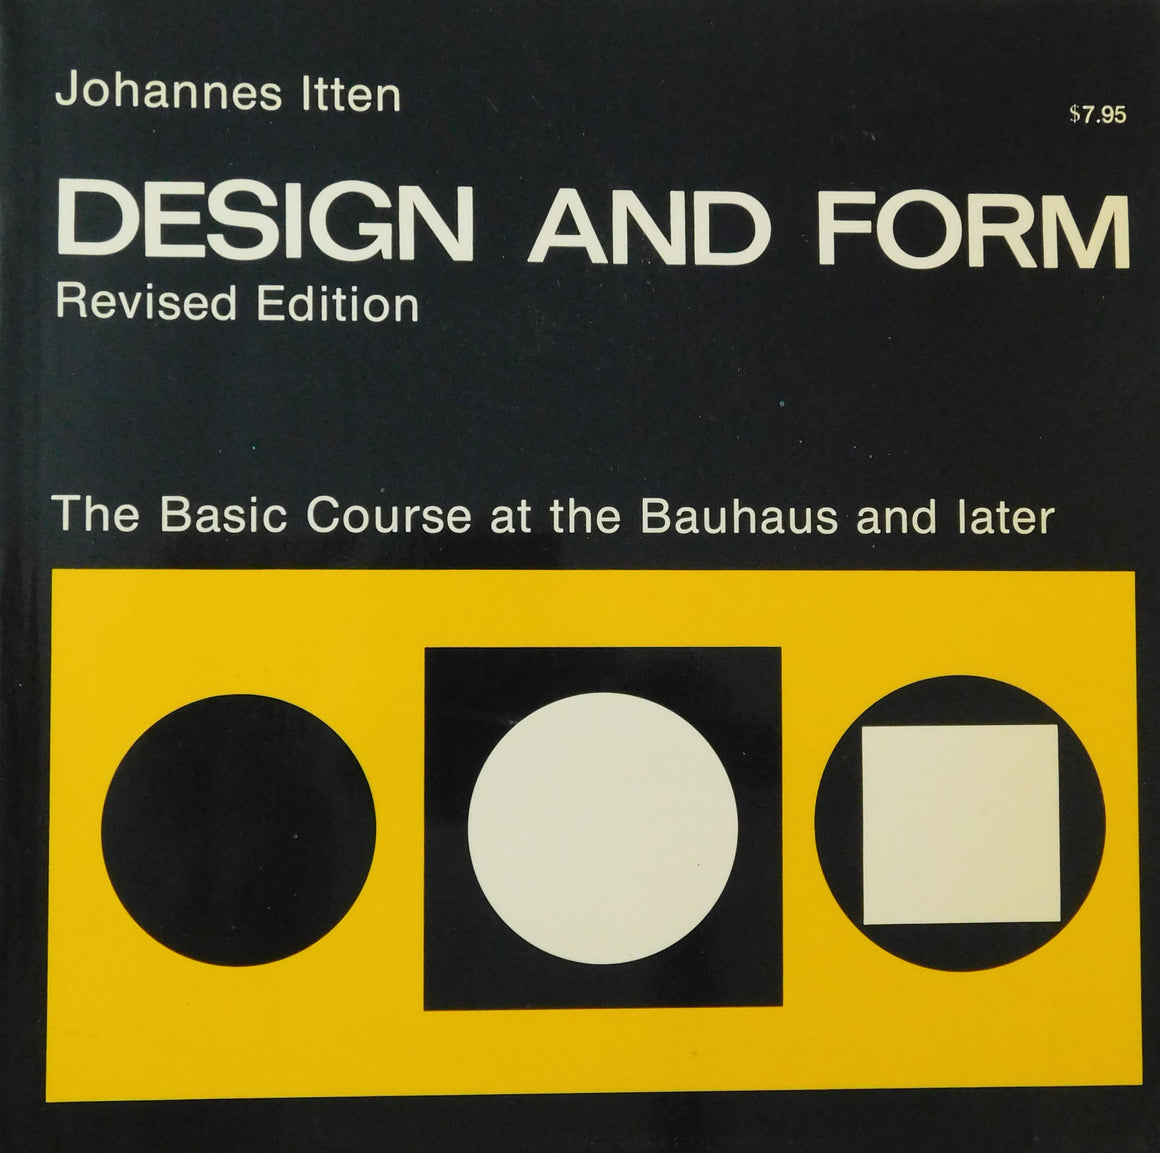 Design and Form - Used Book